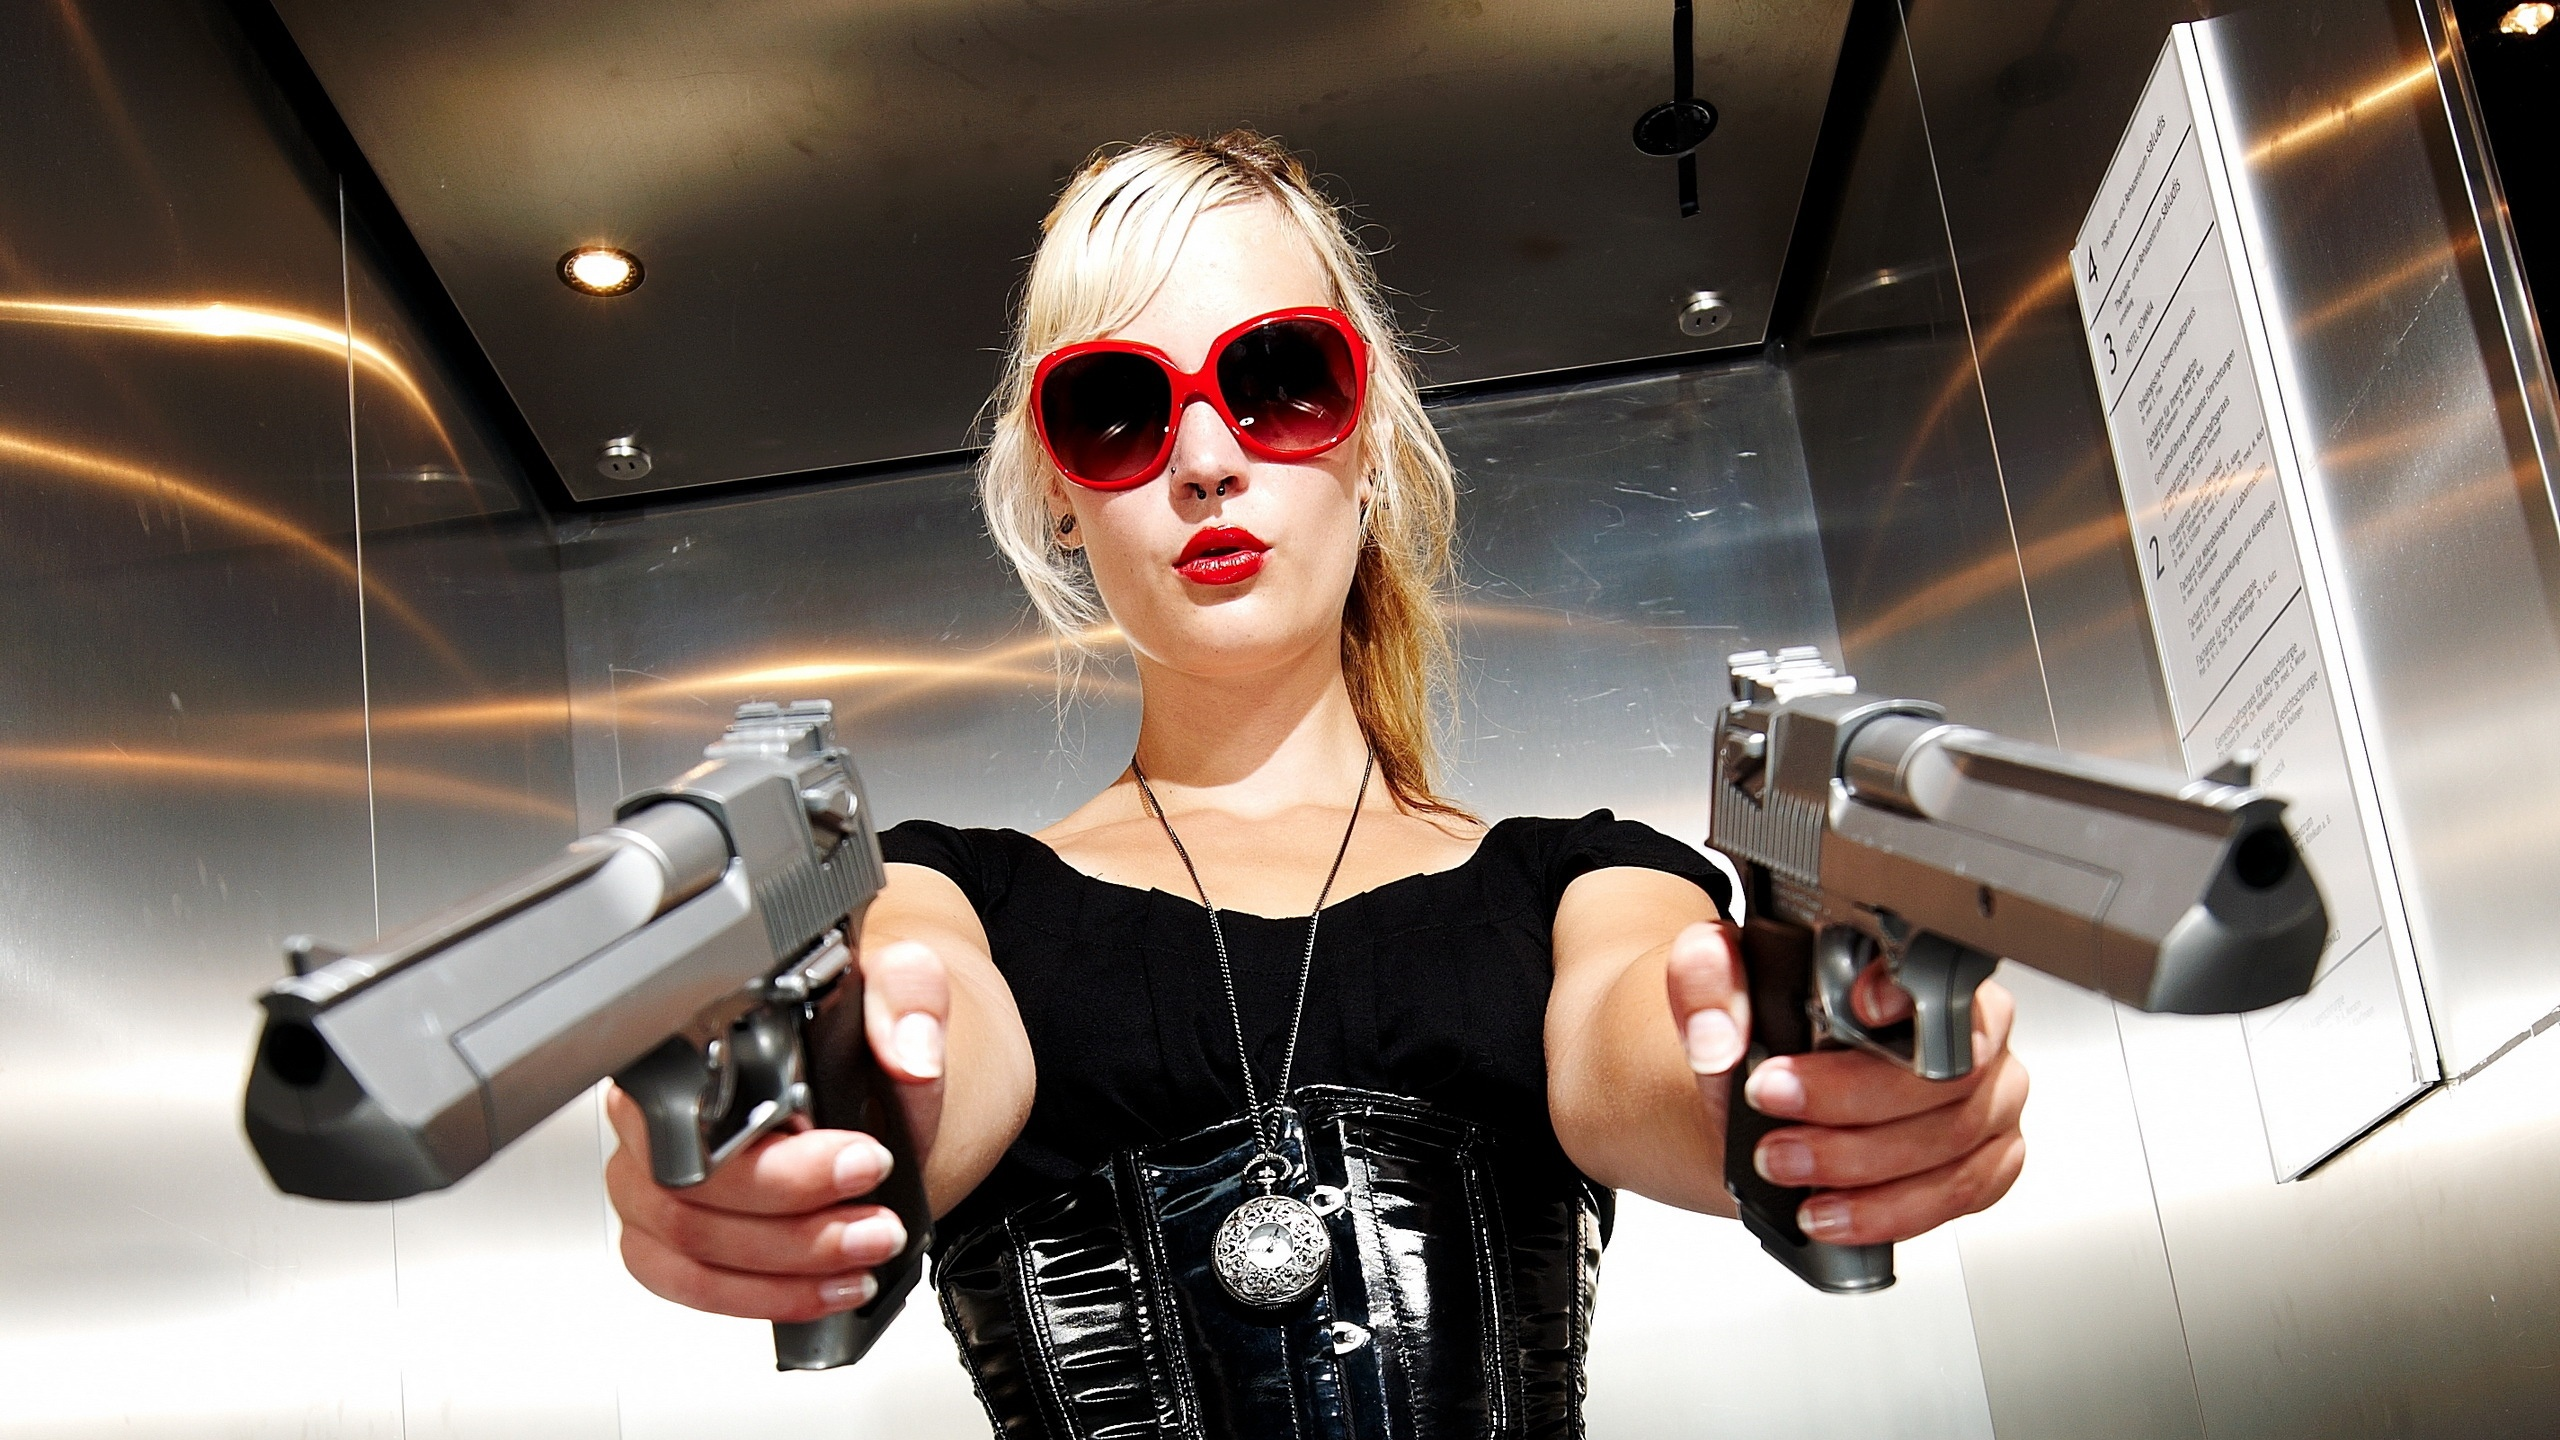 blonde-with-guns-hd-wallpaper